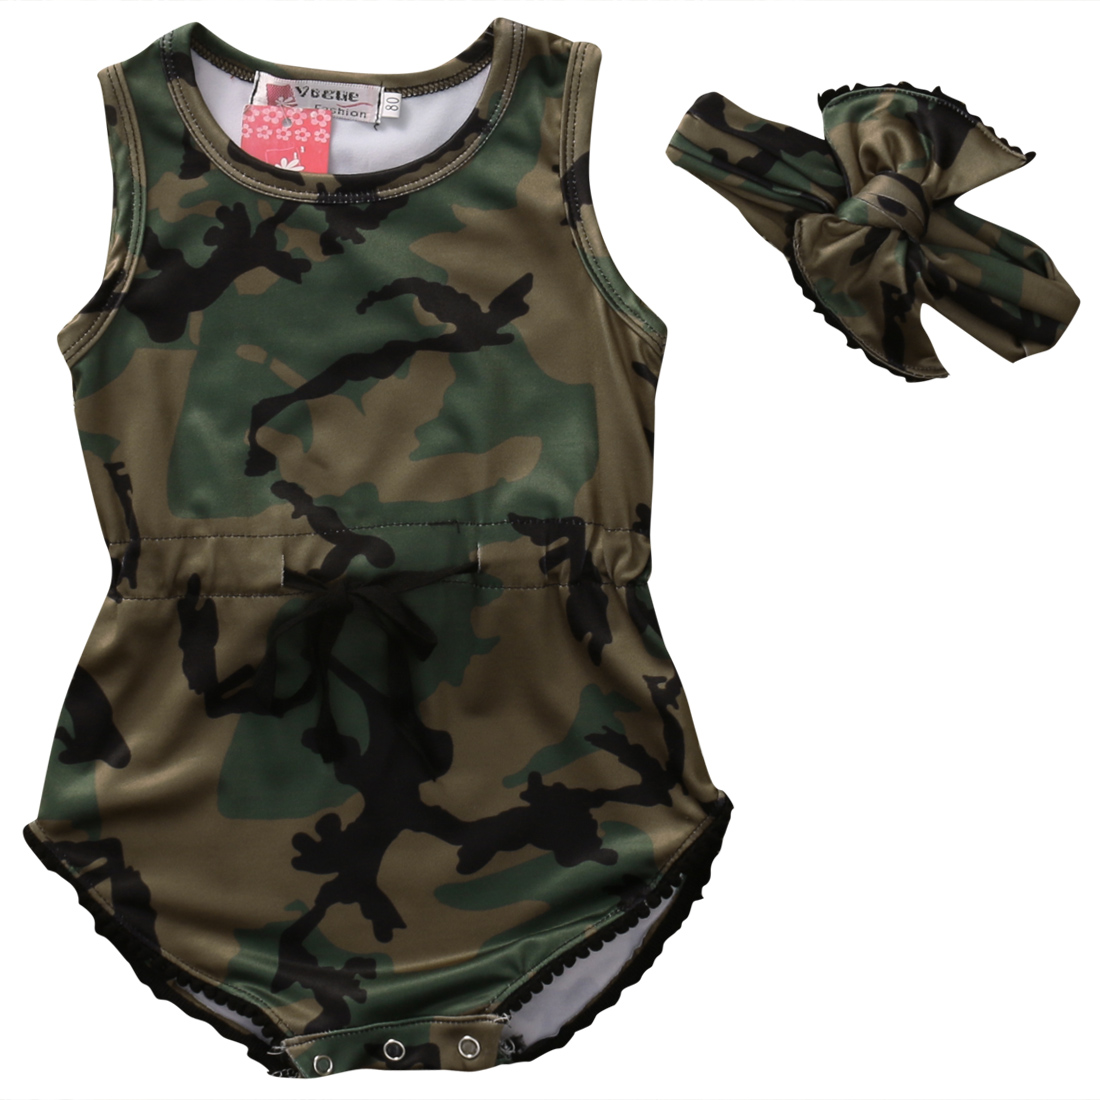 2PCS Newborn Baby Boy Girl Clothes 2017 Summer Sleeveless Camouflage Romper Baby Bodysuit +Headband 2PCS Outfits Kid Bebek Giyim 2017 floral baby romper newborn baby girl clothes ruffles sleeve bodysuit headband 2pcs outfit bebek giyim sunsuit 0 24m